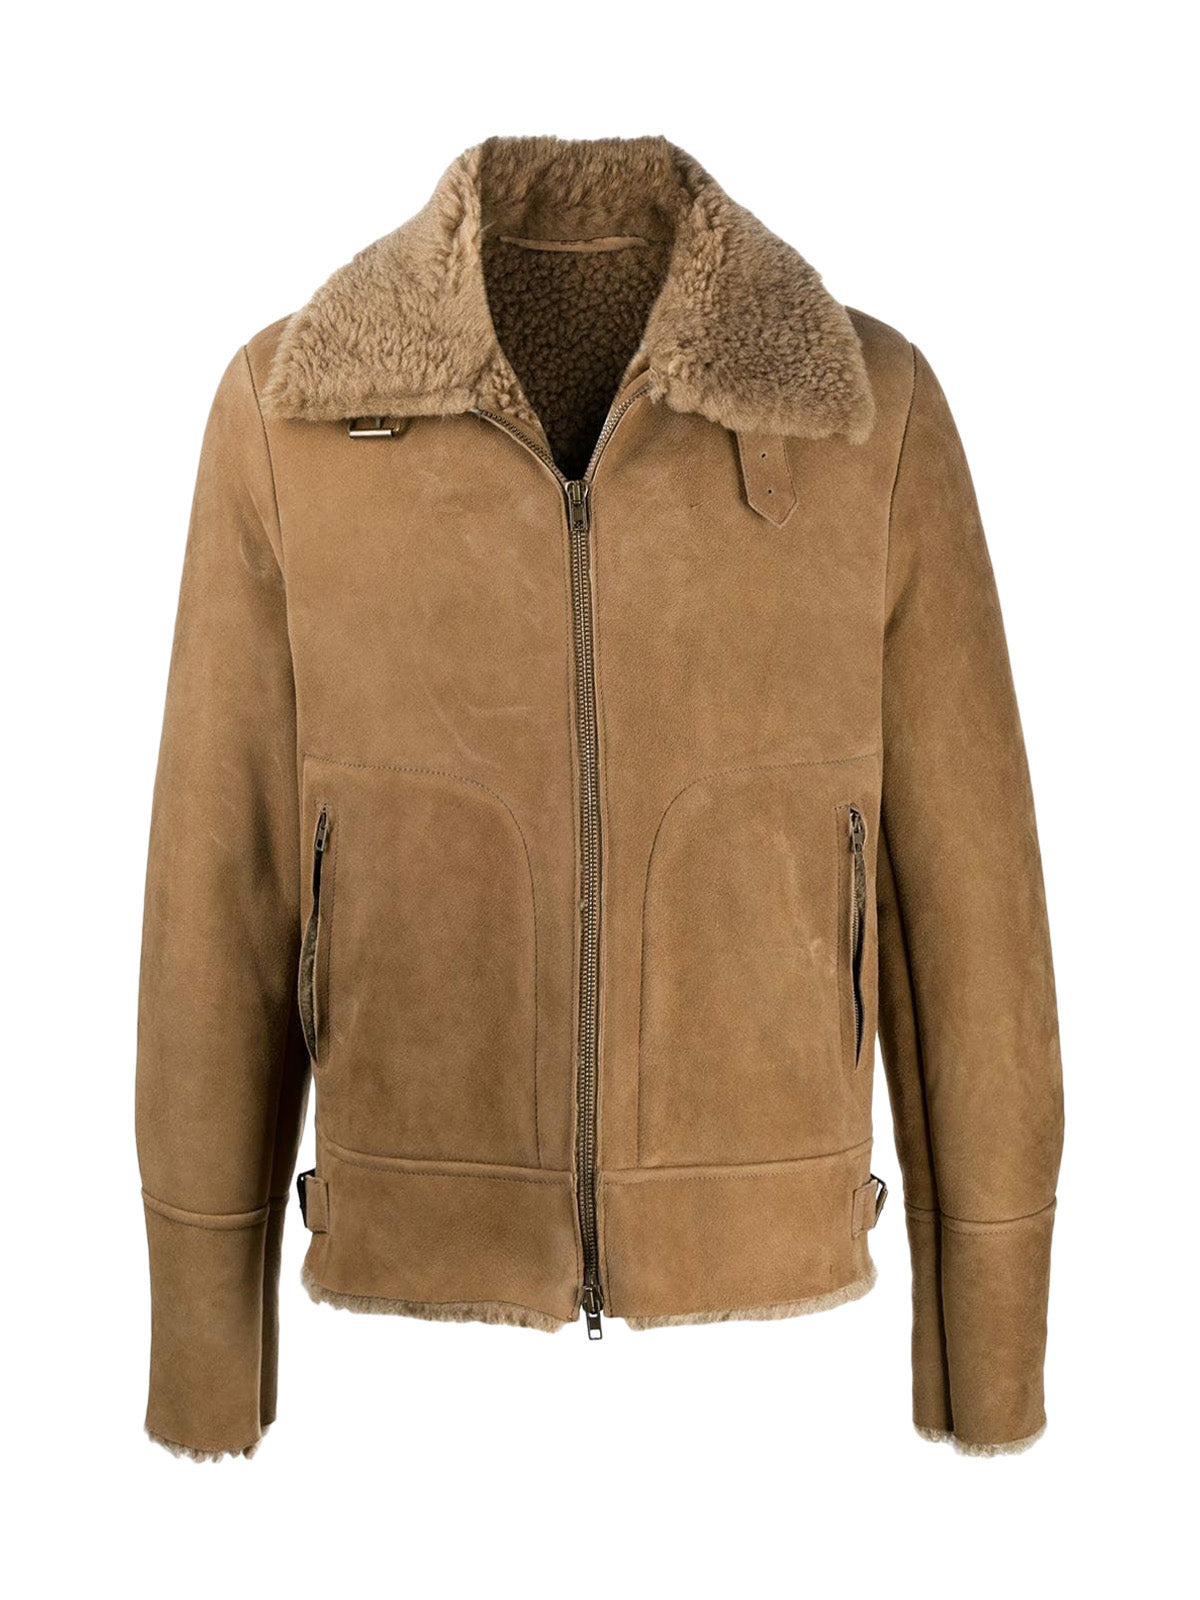 fur-collar zipped jacket